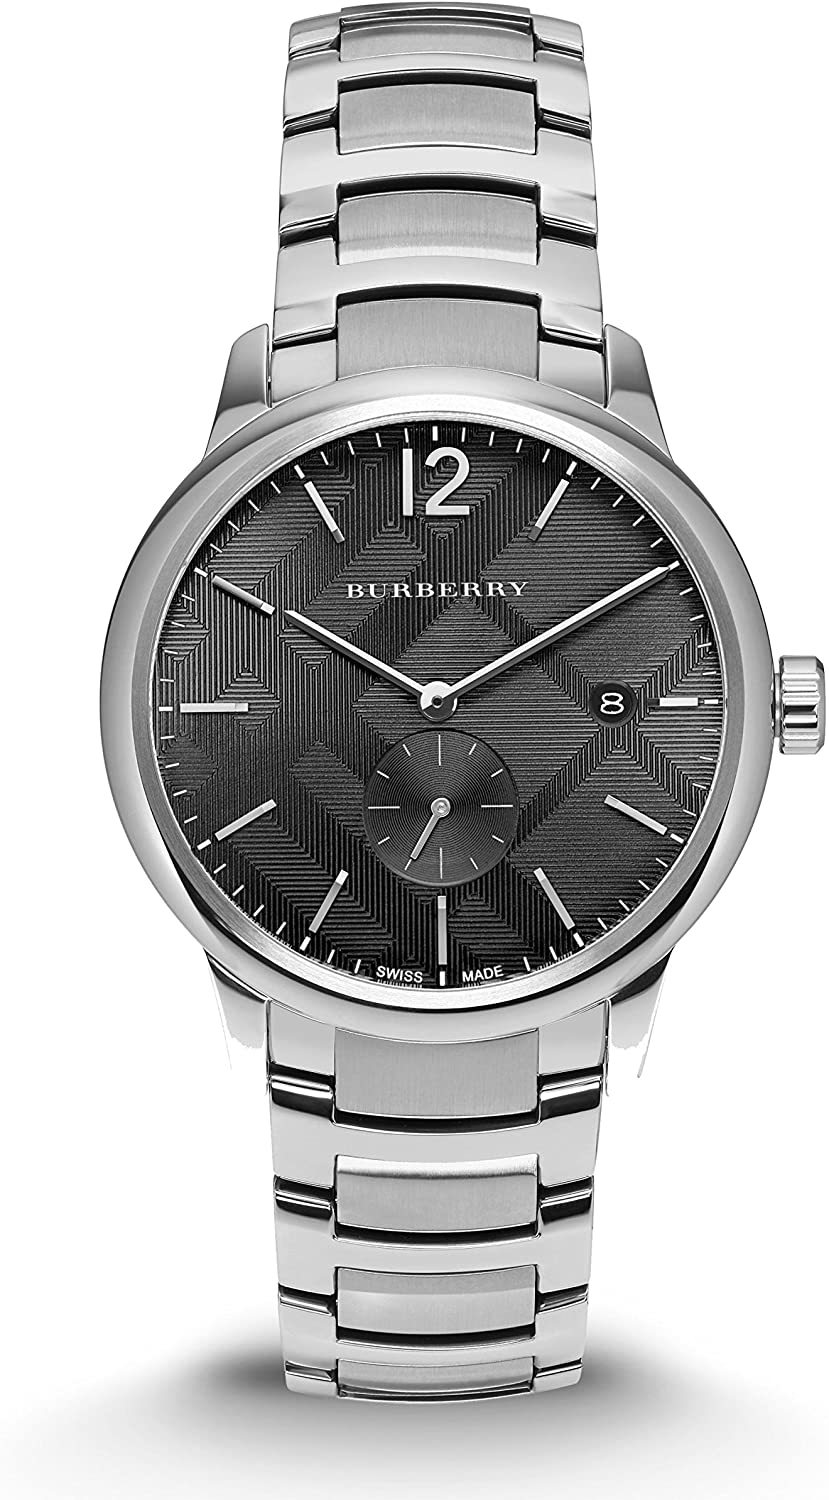 Primary image for Burberry BU10005 The Classic Round Black Dial Bracelet Watch 40 mm - Warranty